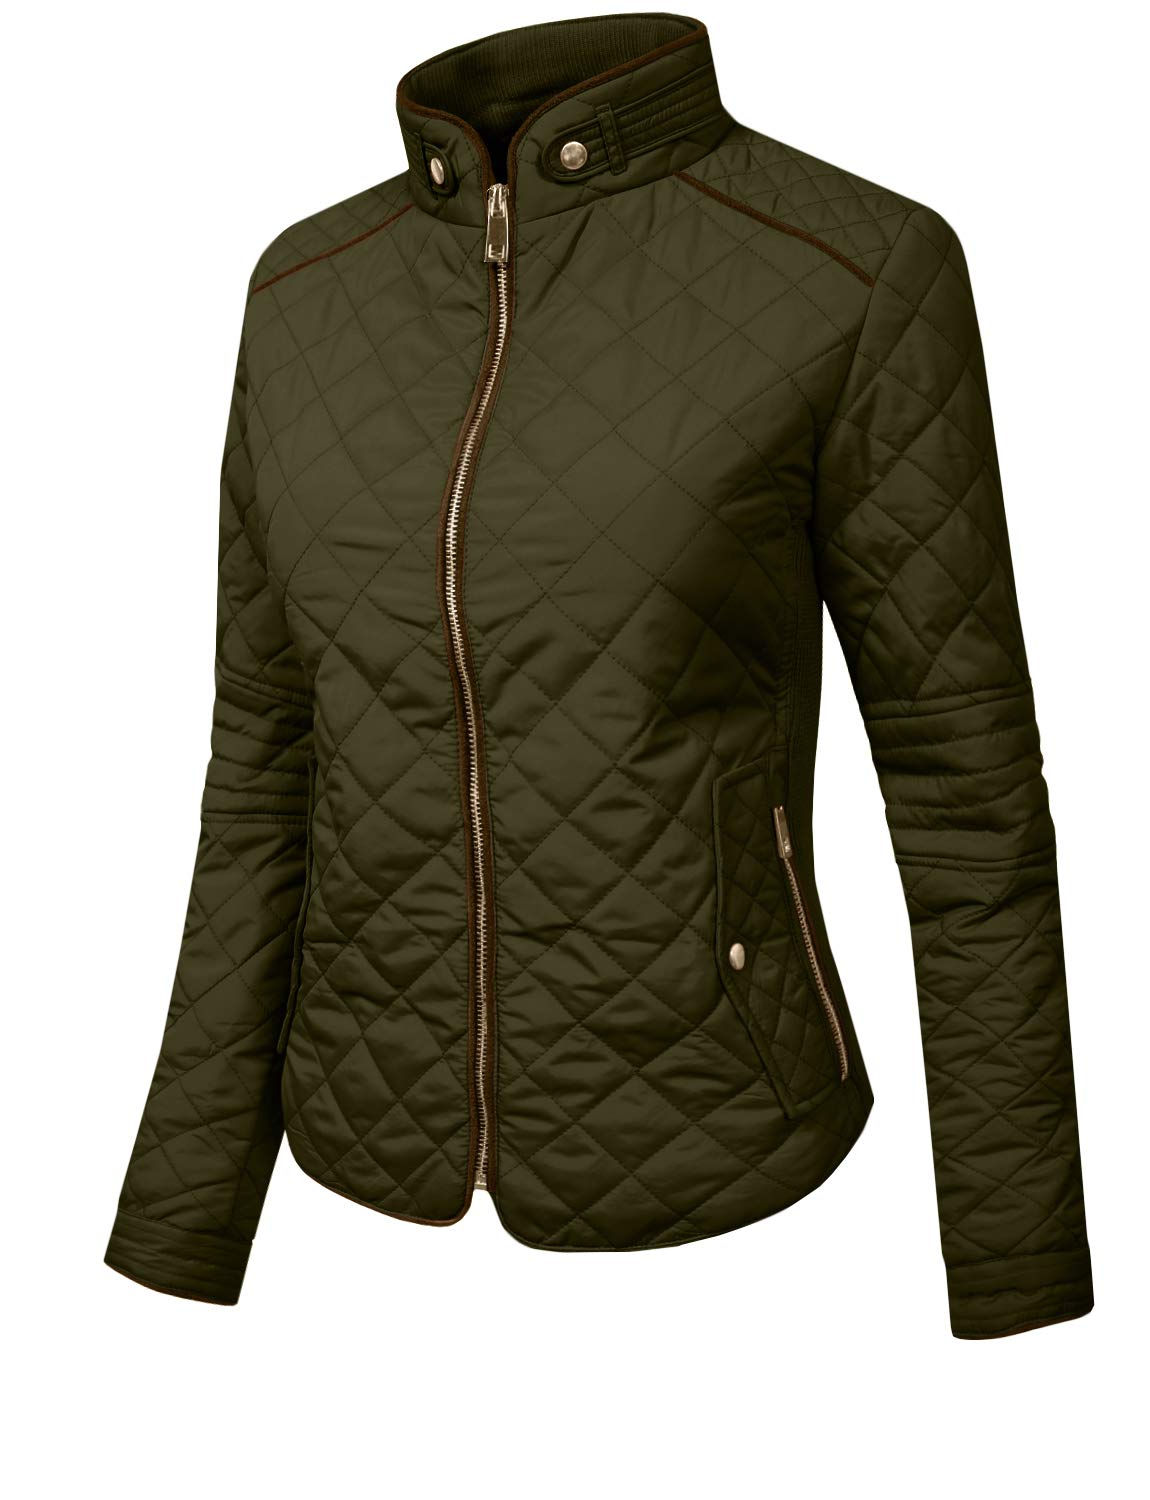 J. LOVNY Womens Lightweight Quilted Warm Zip Jacket/Vest with Pocket Details by J. LOVNY (Image #2)